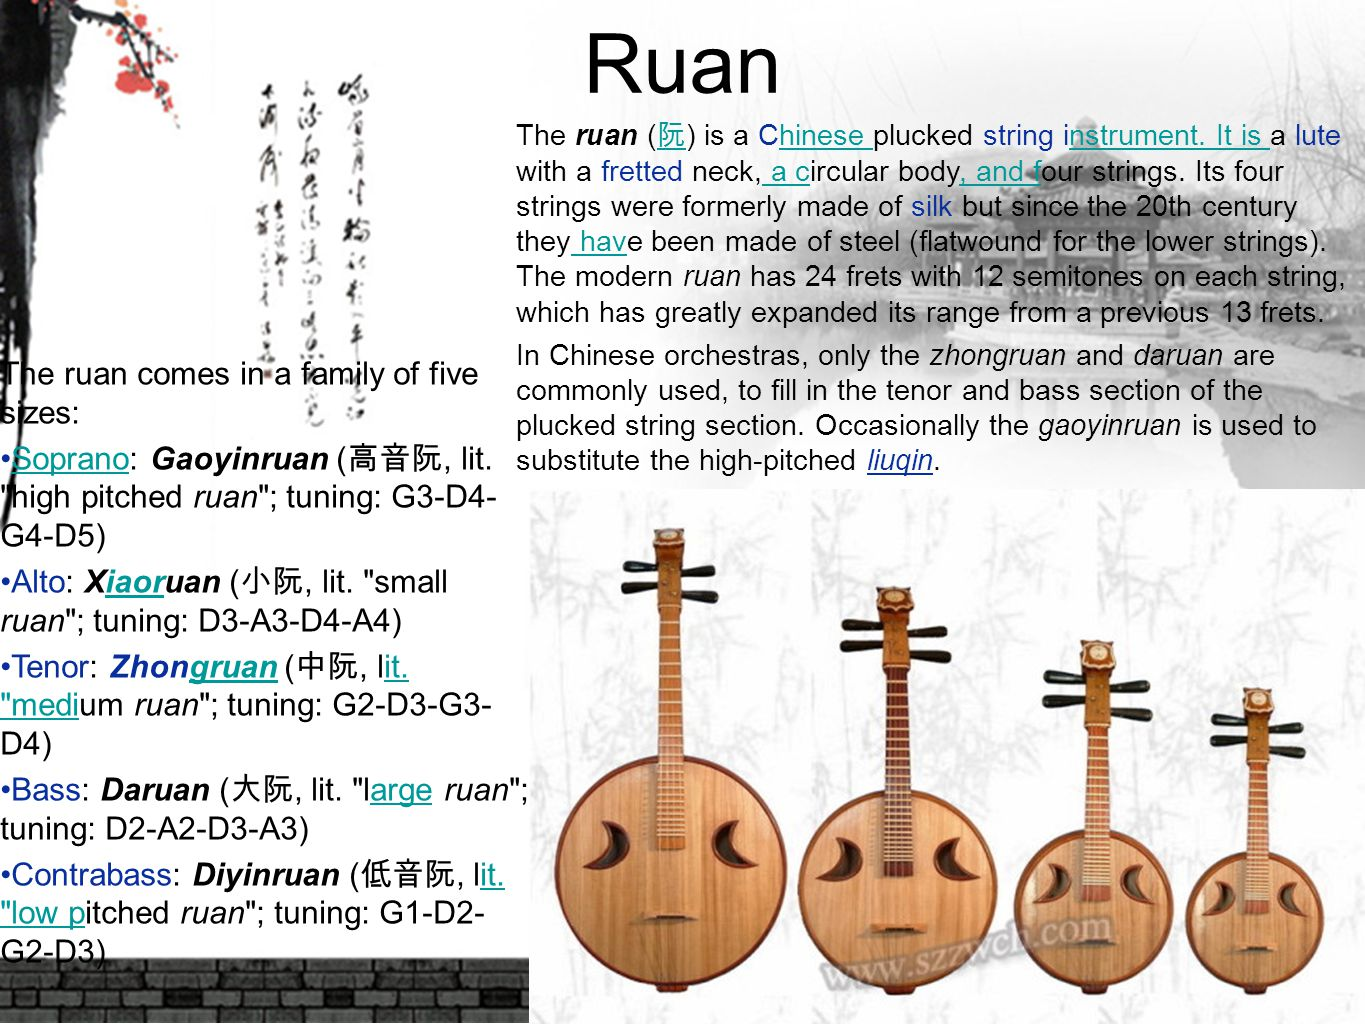 Ruan The ruan comes in a family of five sizes: